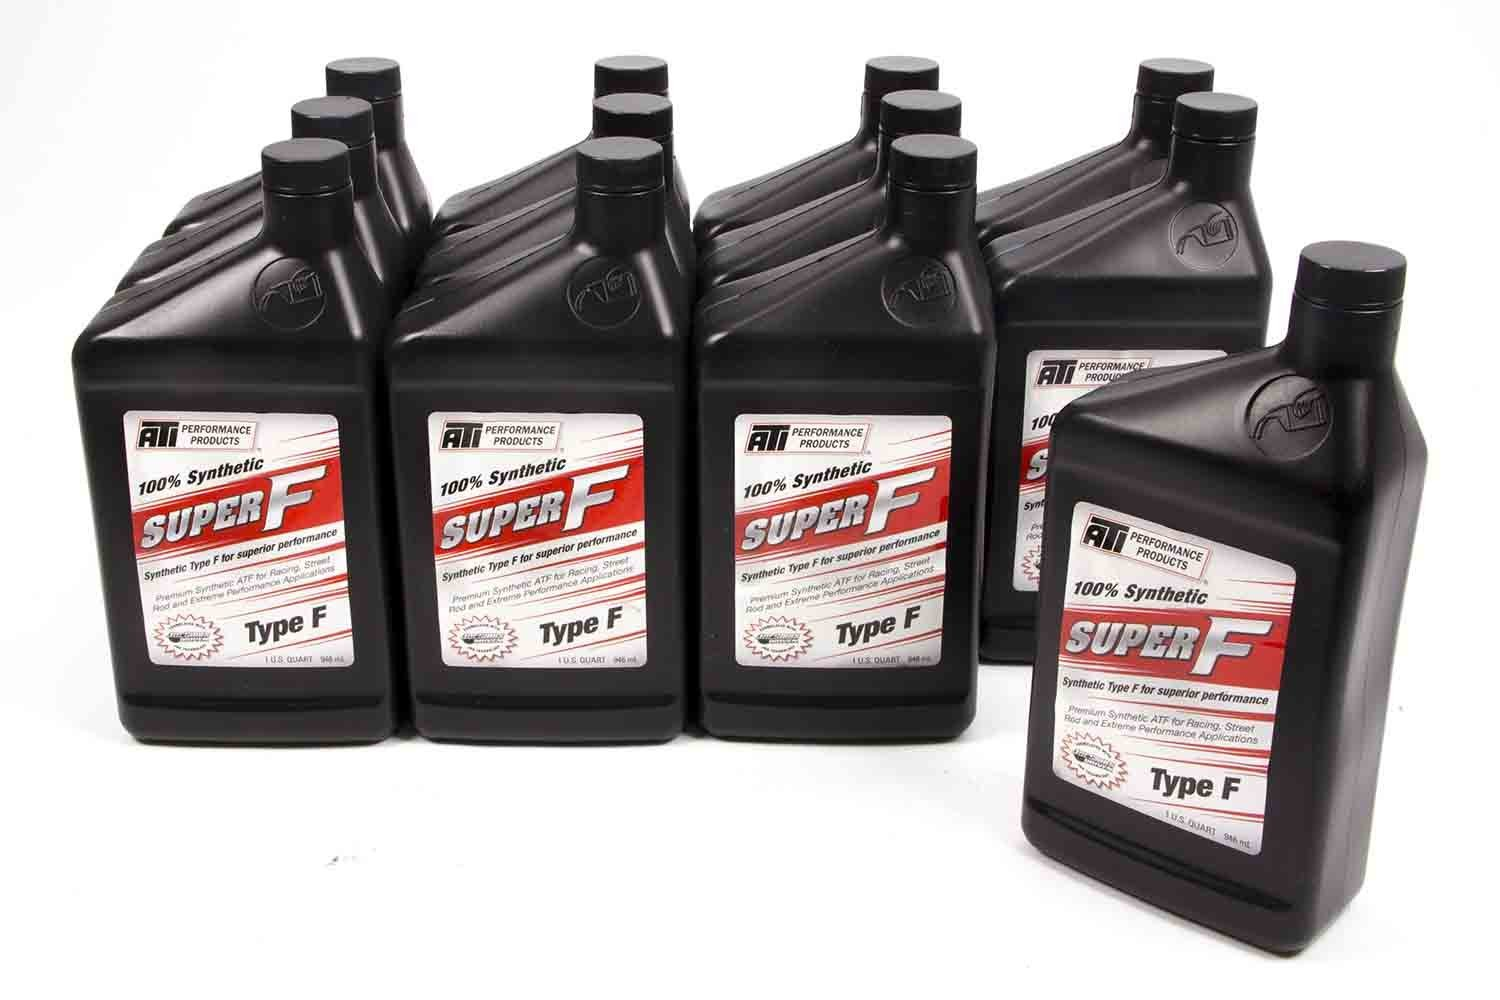 ATI Performance Products 100001-12 Transmission Fluid